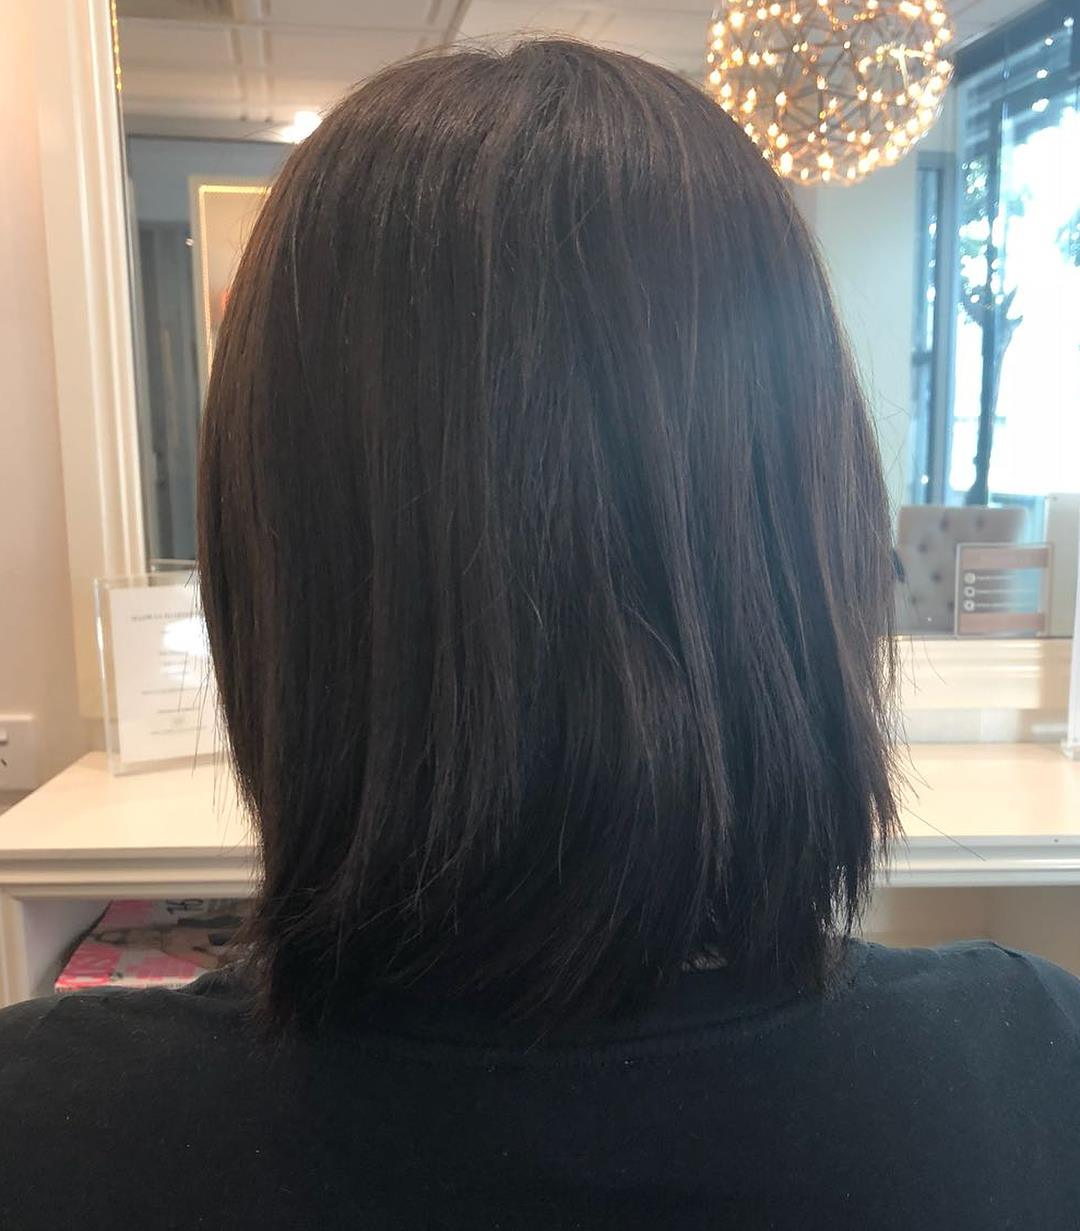 Hair Extensions for Short Hair - EH Hair - before image